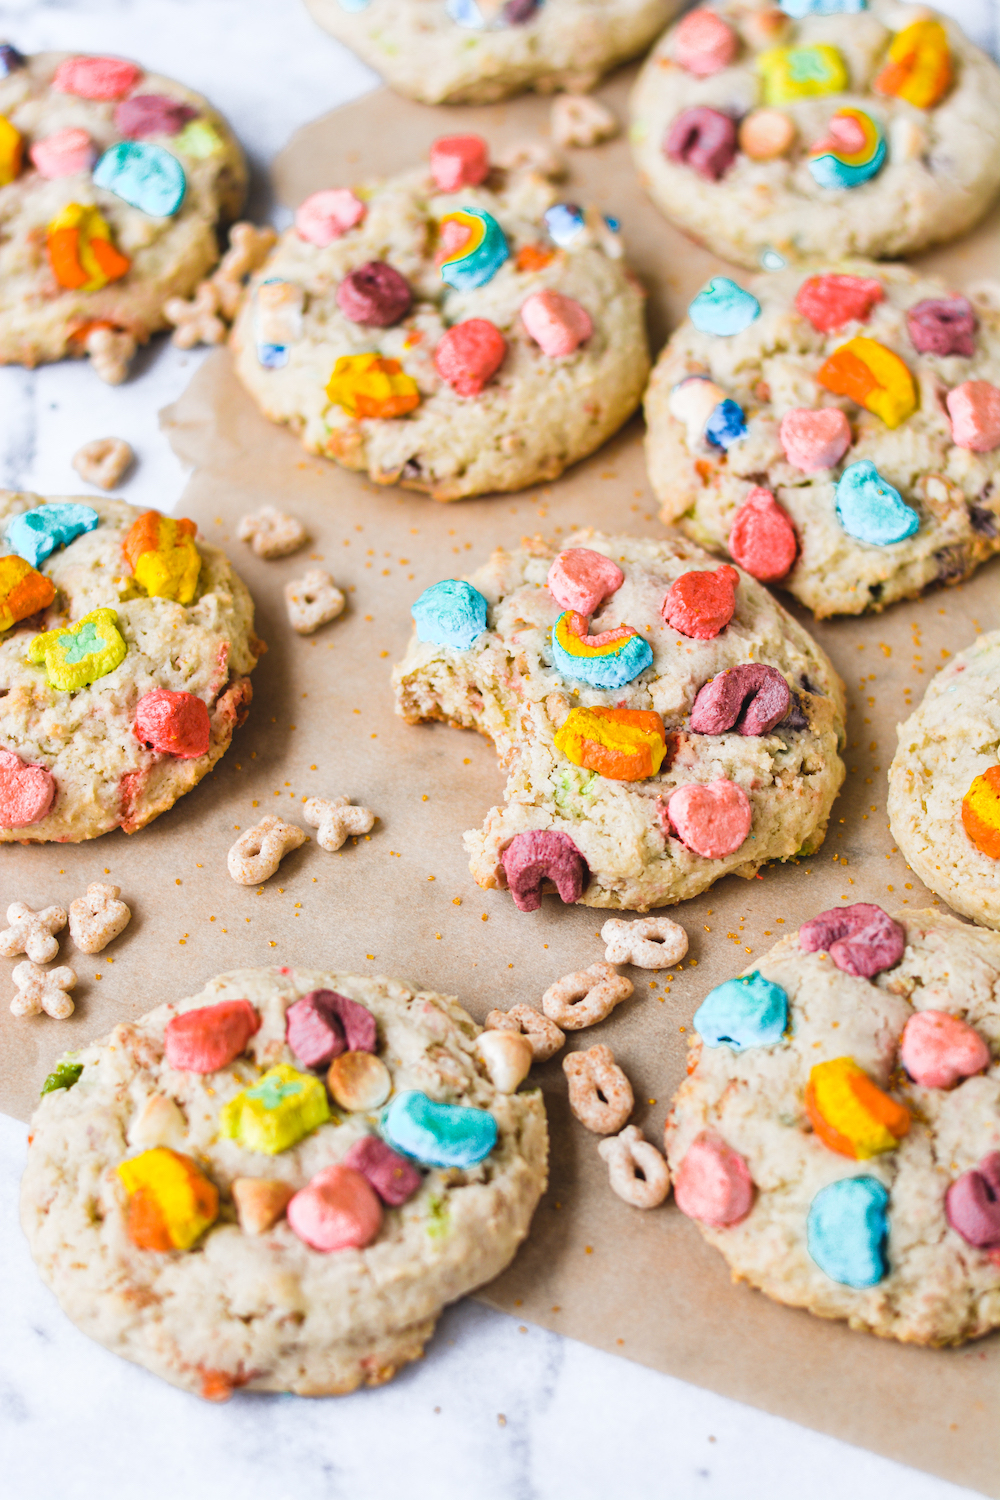 lucky charms cookies - bethcakes.com